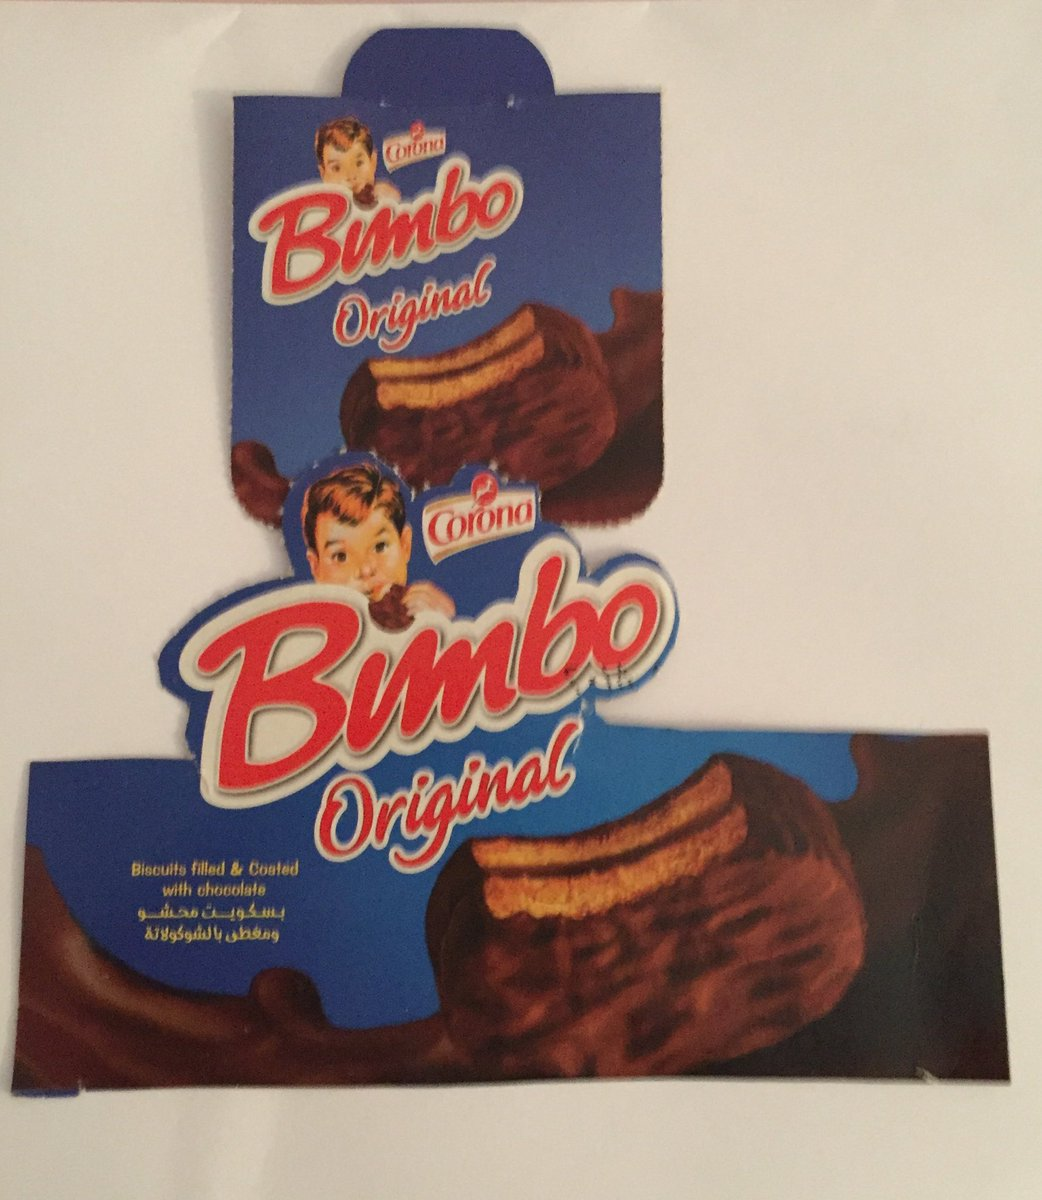 Best Media On Twitter Bimbo Original Biscuits Filled Coated With Chocolate Product Of Corona Egypt Biscuits Chocolate Cookies Corona Eg Egypt Https T Co Sjy1a9hgvw